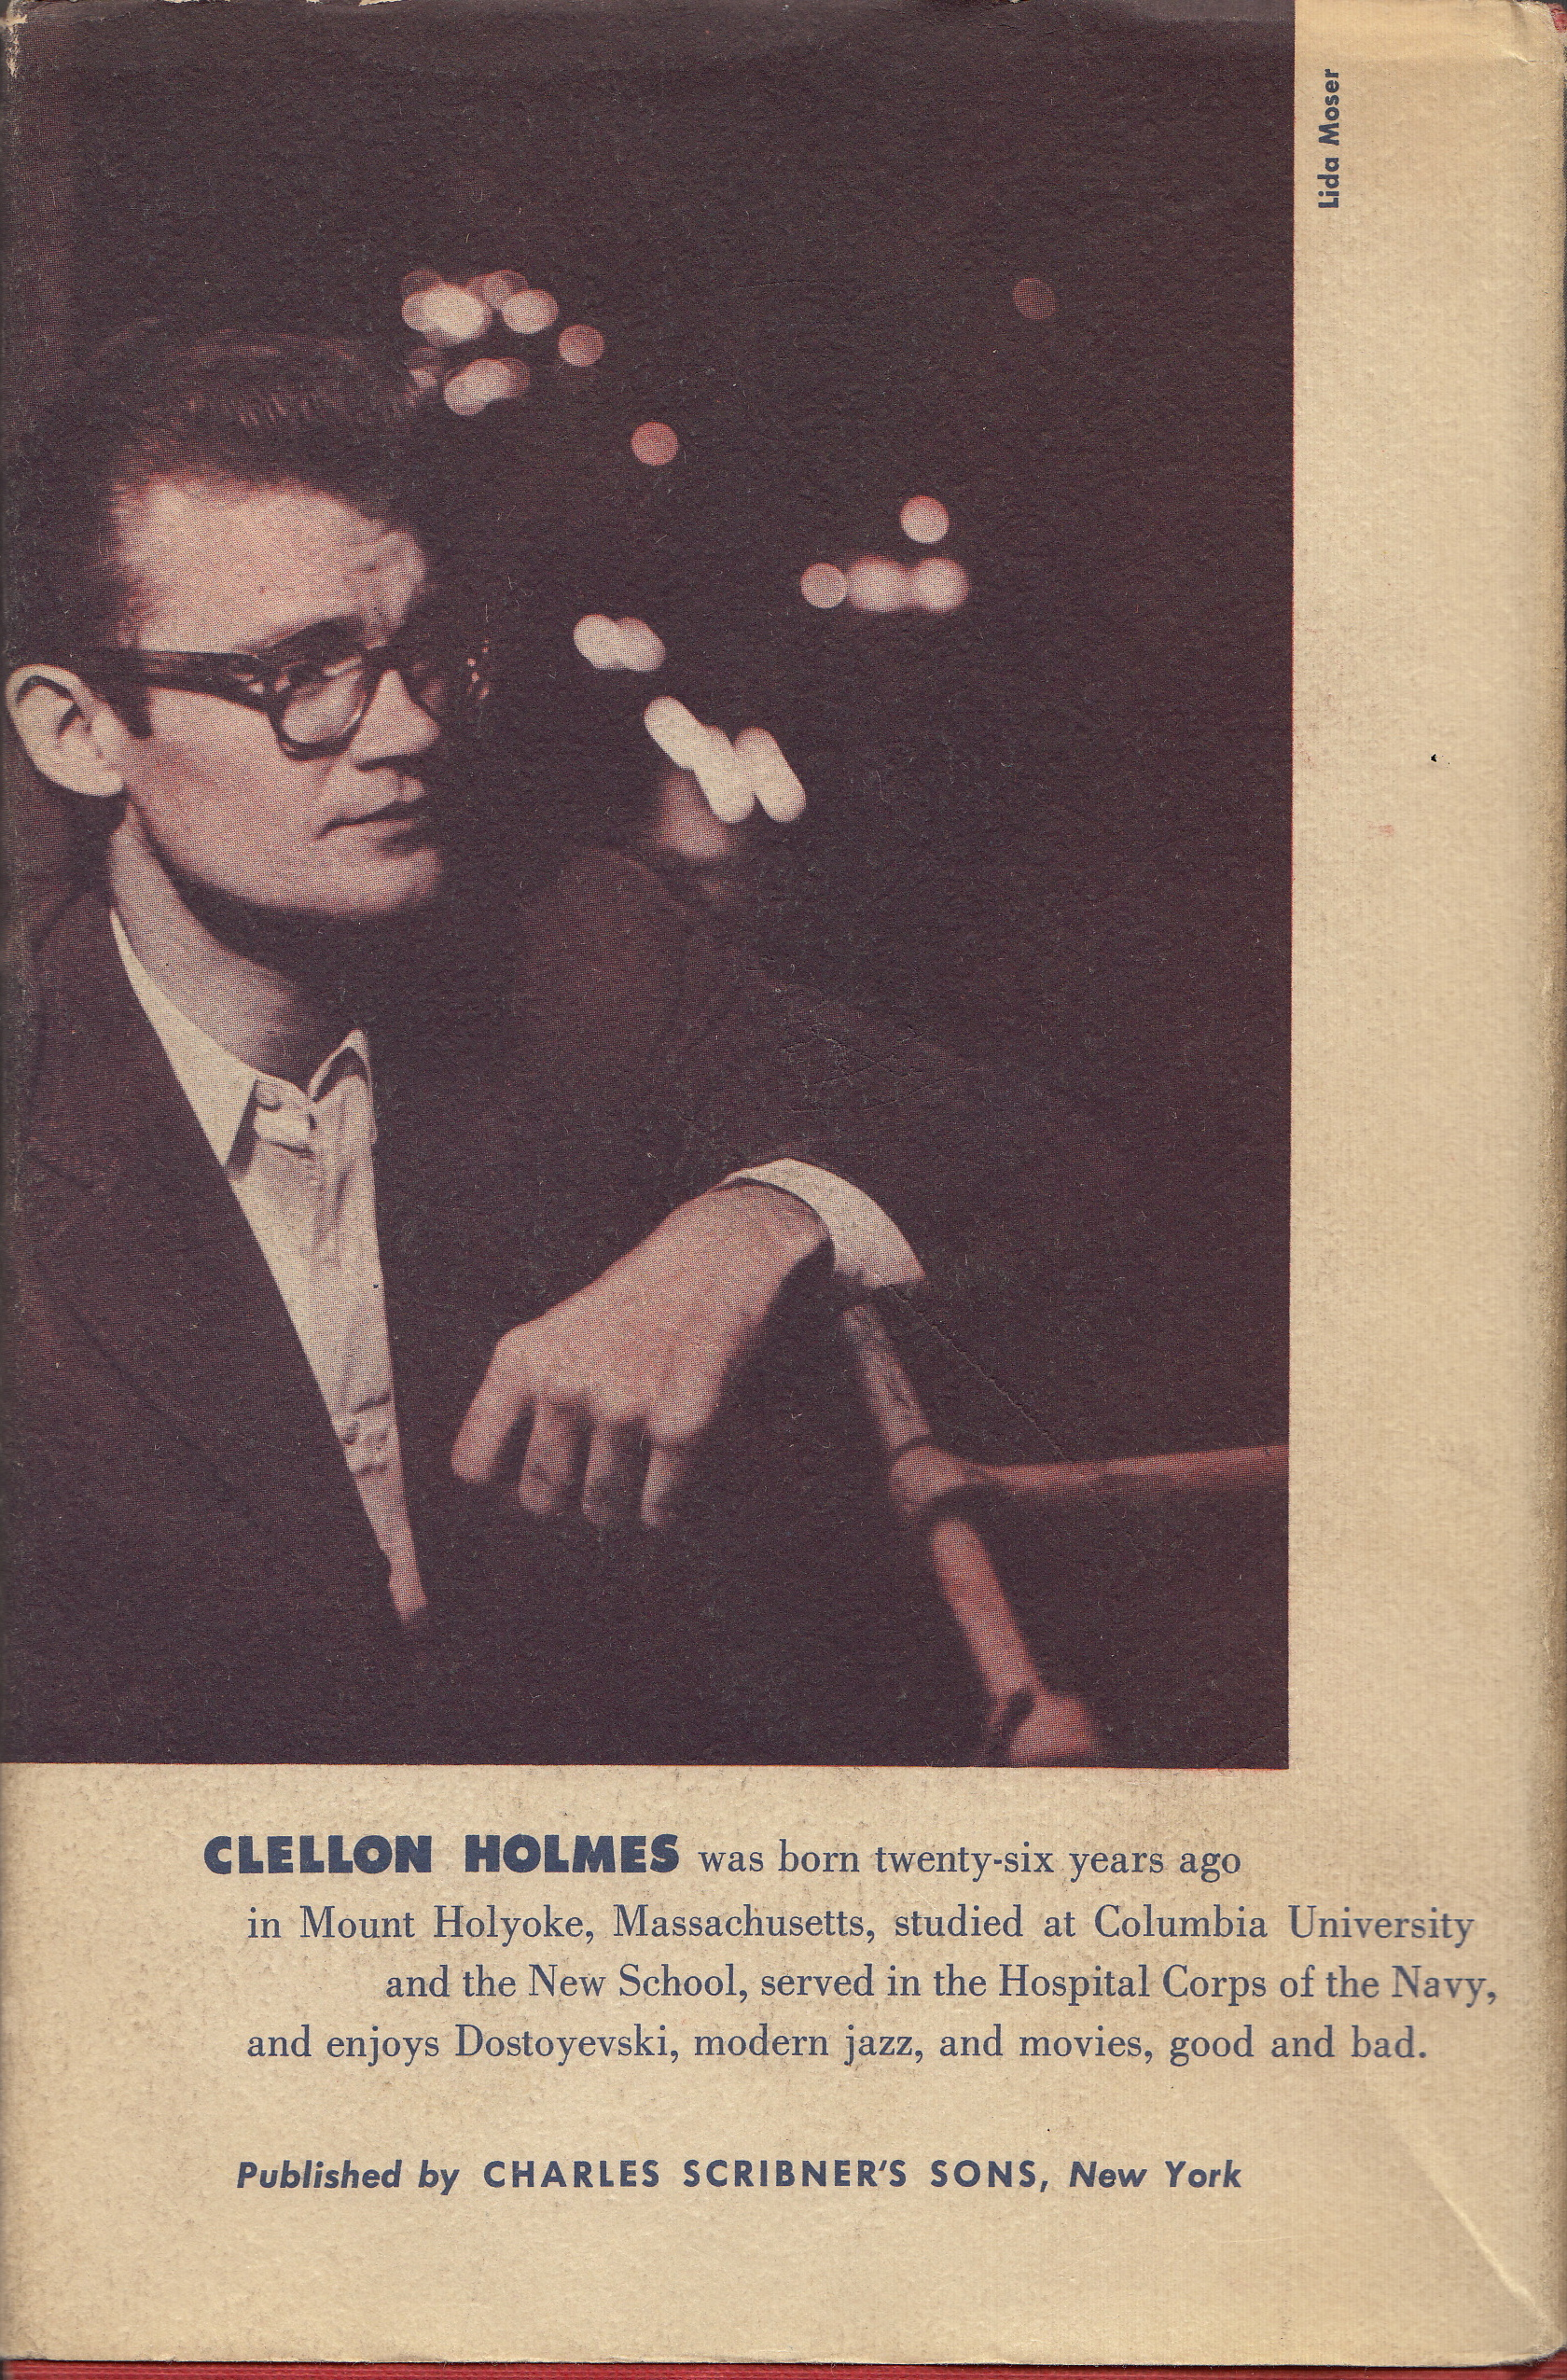 Photograph of John Clellon Holmes on the back cover of the first edition of Go.